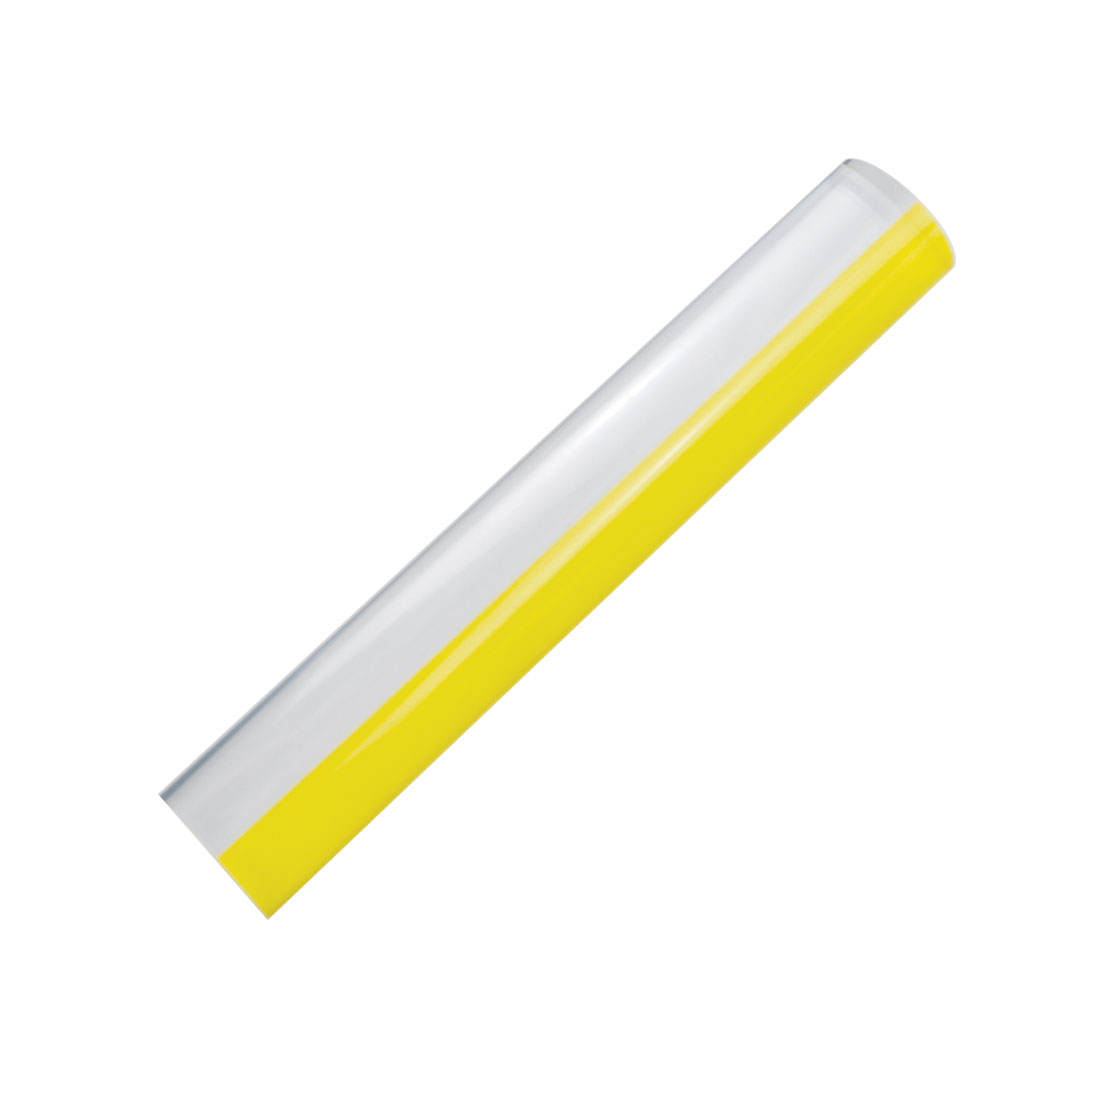 EZ Magnibar - Half-Yellow - 6 inches